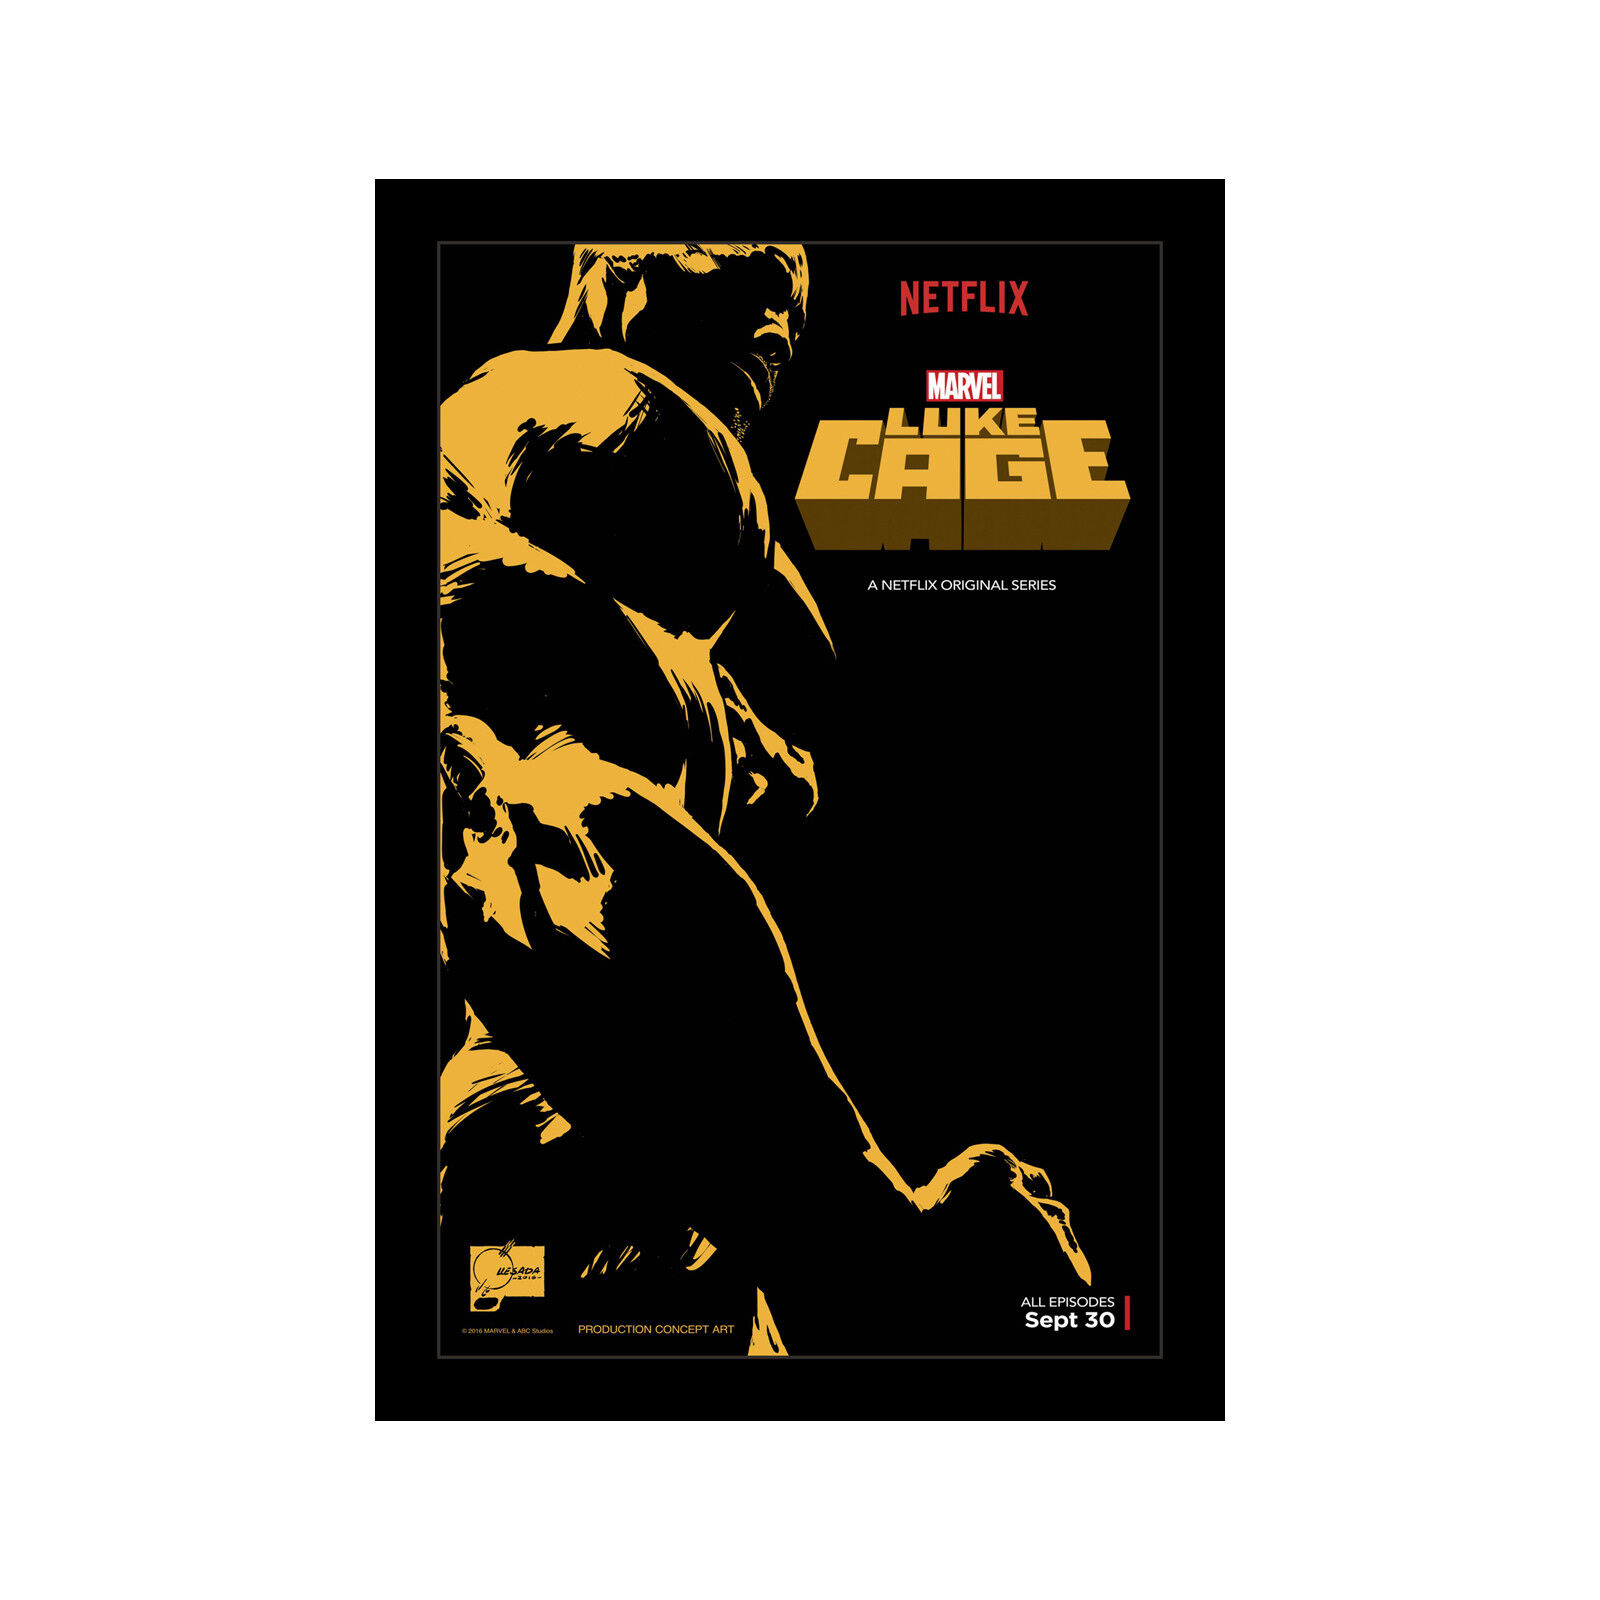 LUKE CAGE - 11x17 Framed Movie Poster by Wallspace